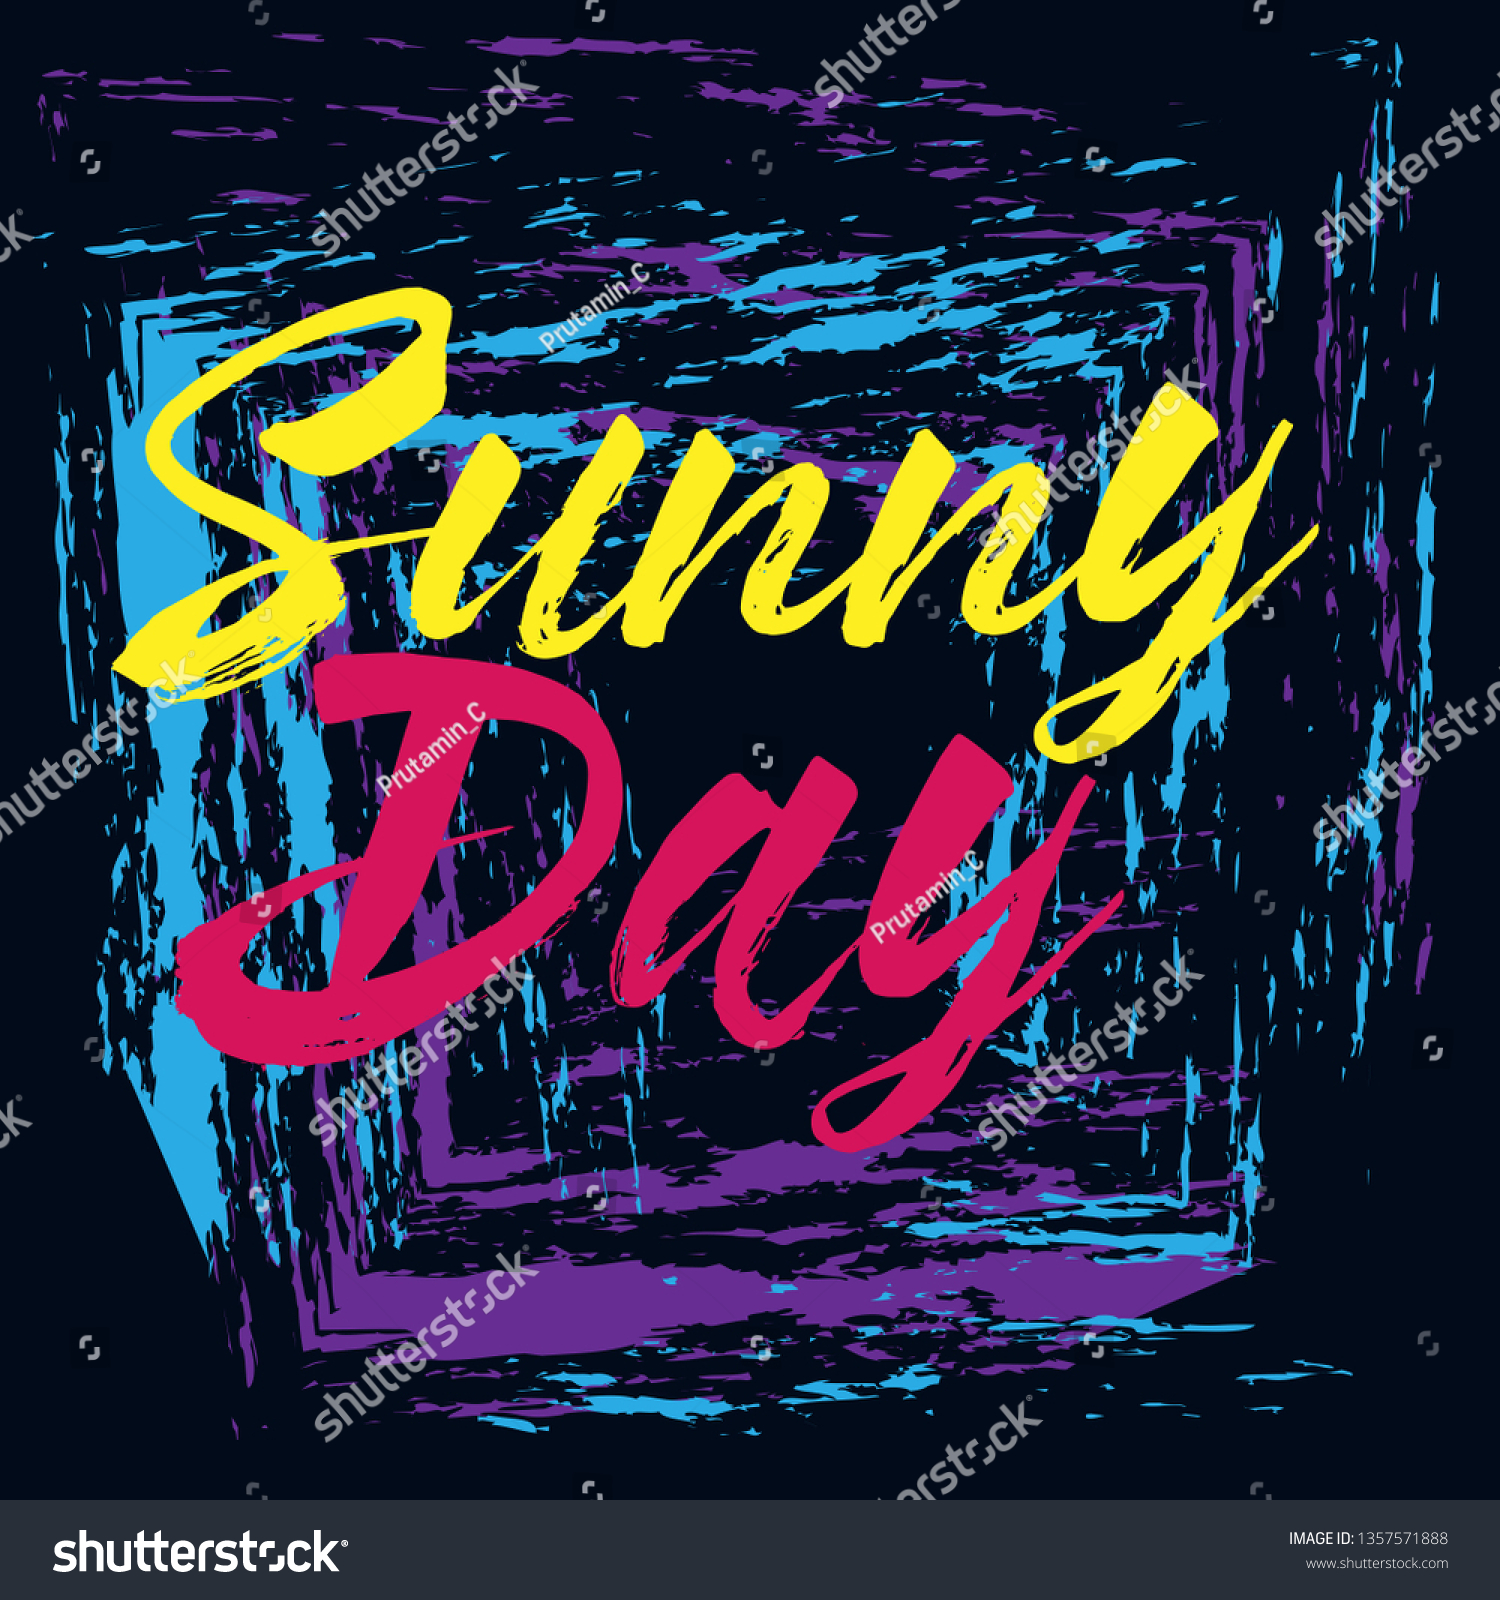 sunny day, Beautiful greeting card poster with painting calligraphy text